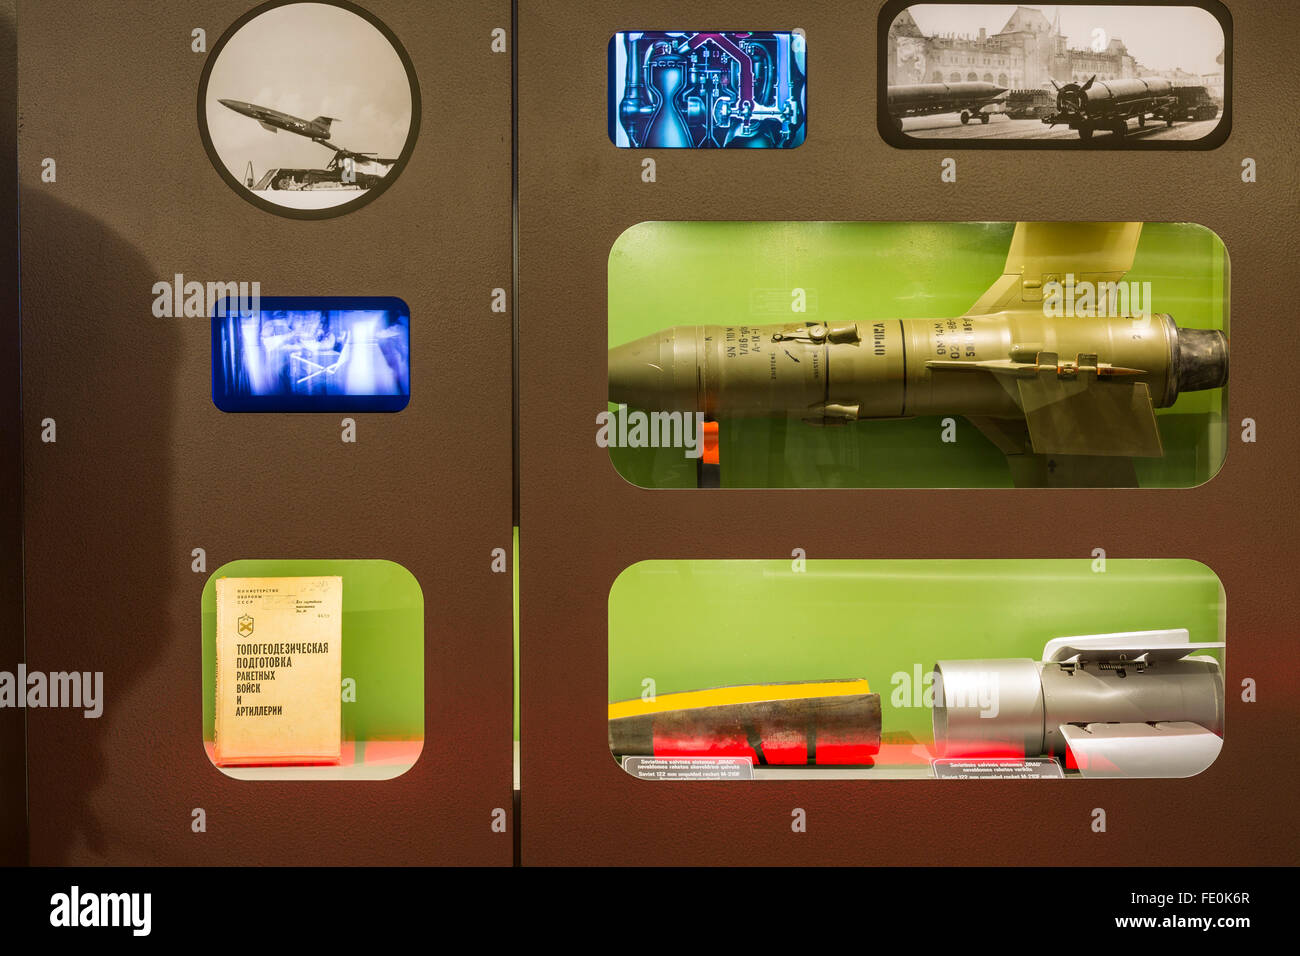 Nuclear armaments on display at the Plokstine Nuclear Missile site, now Cold War museum, Lithuania. - Stock Image